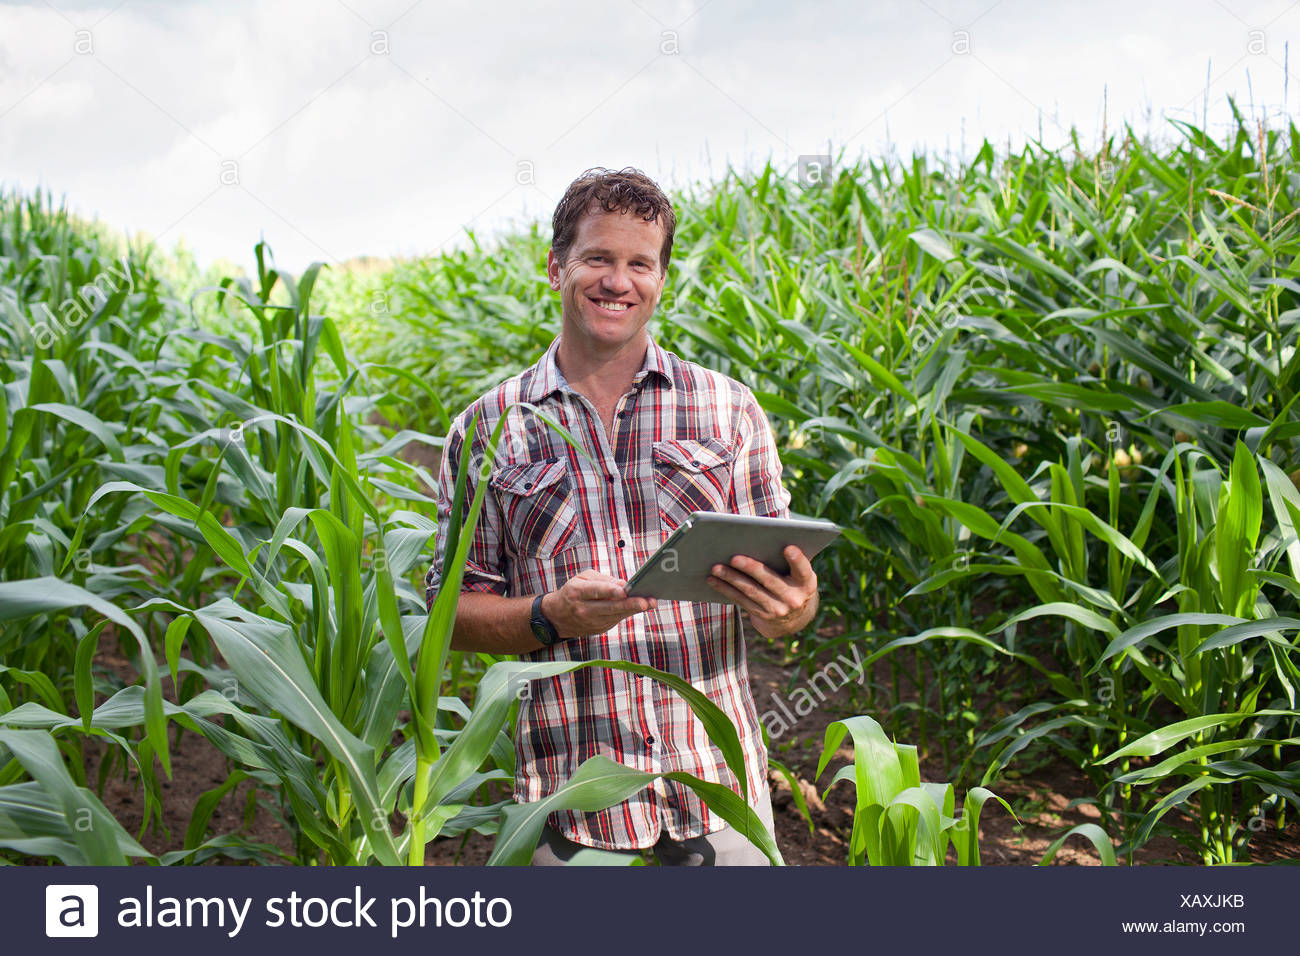 Farmer standing in field of crops using digital tablet - Stock Image